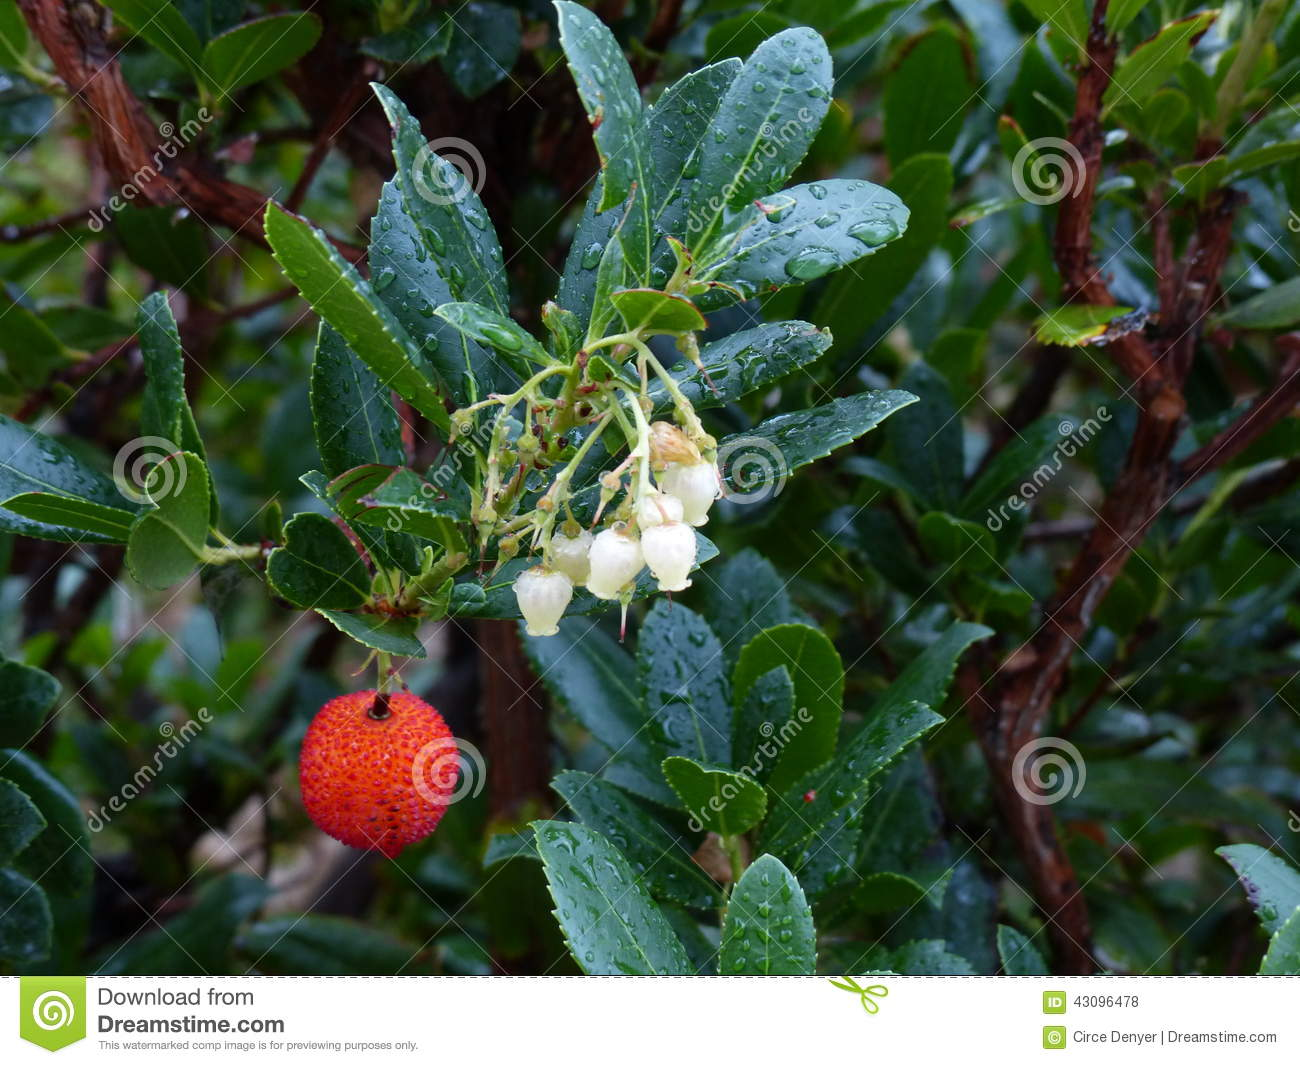 Wet leaves and one red berry stock photo image of water leaves royalty free stock photo mightylinksfo Gallery